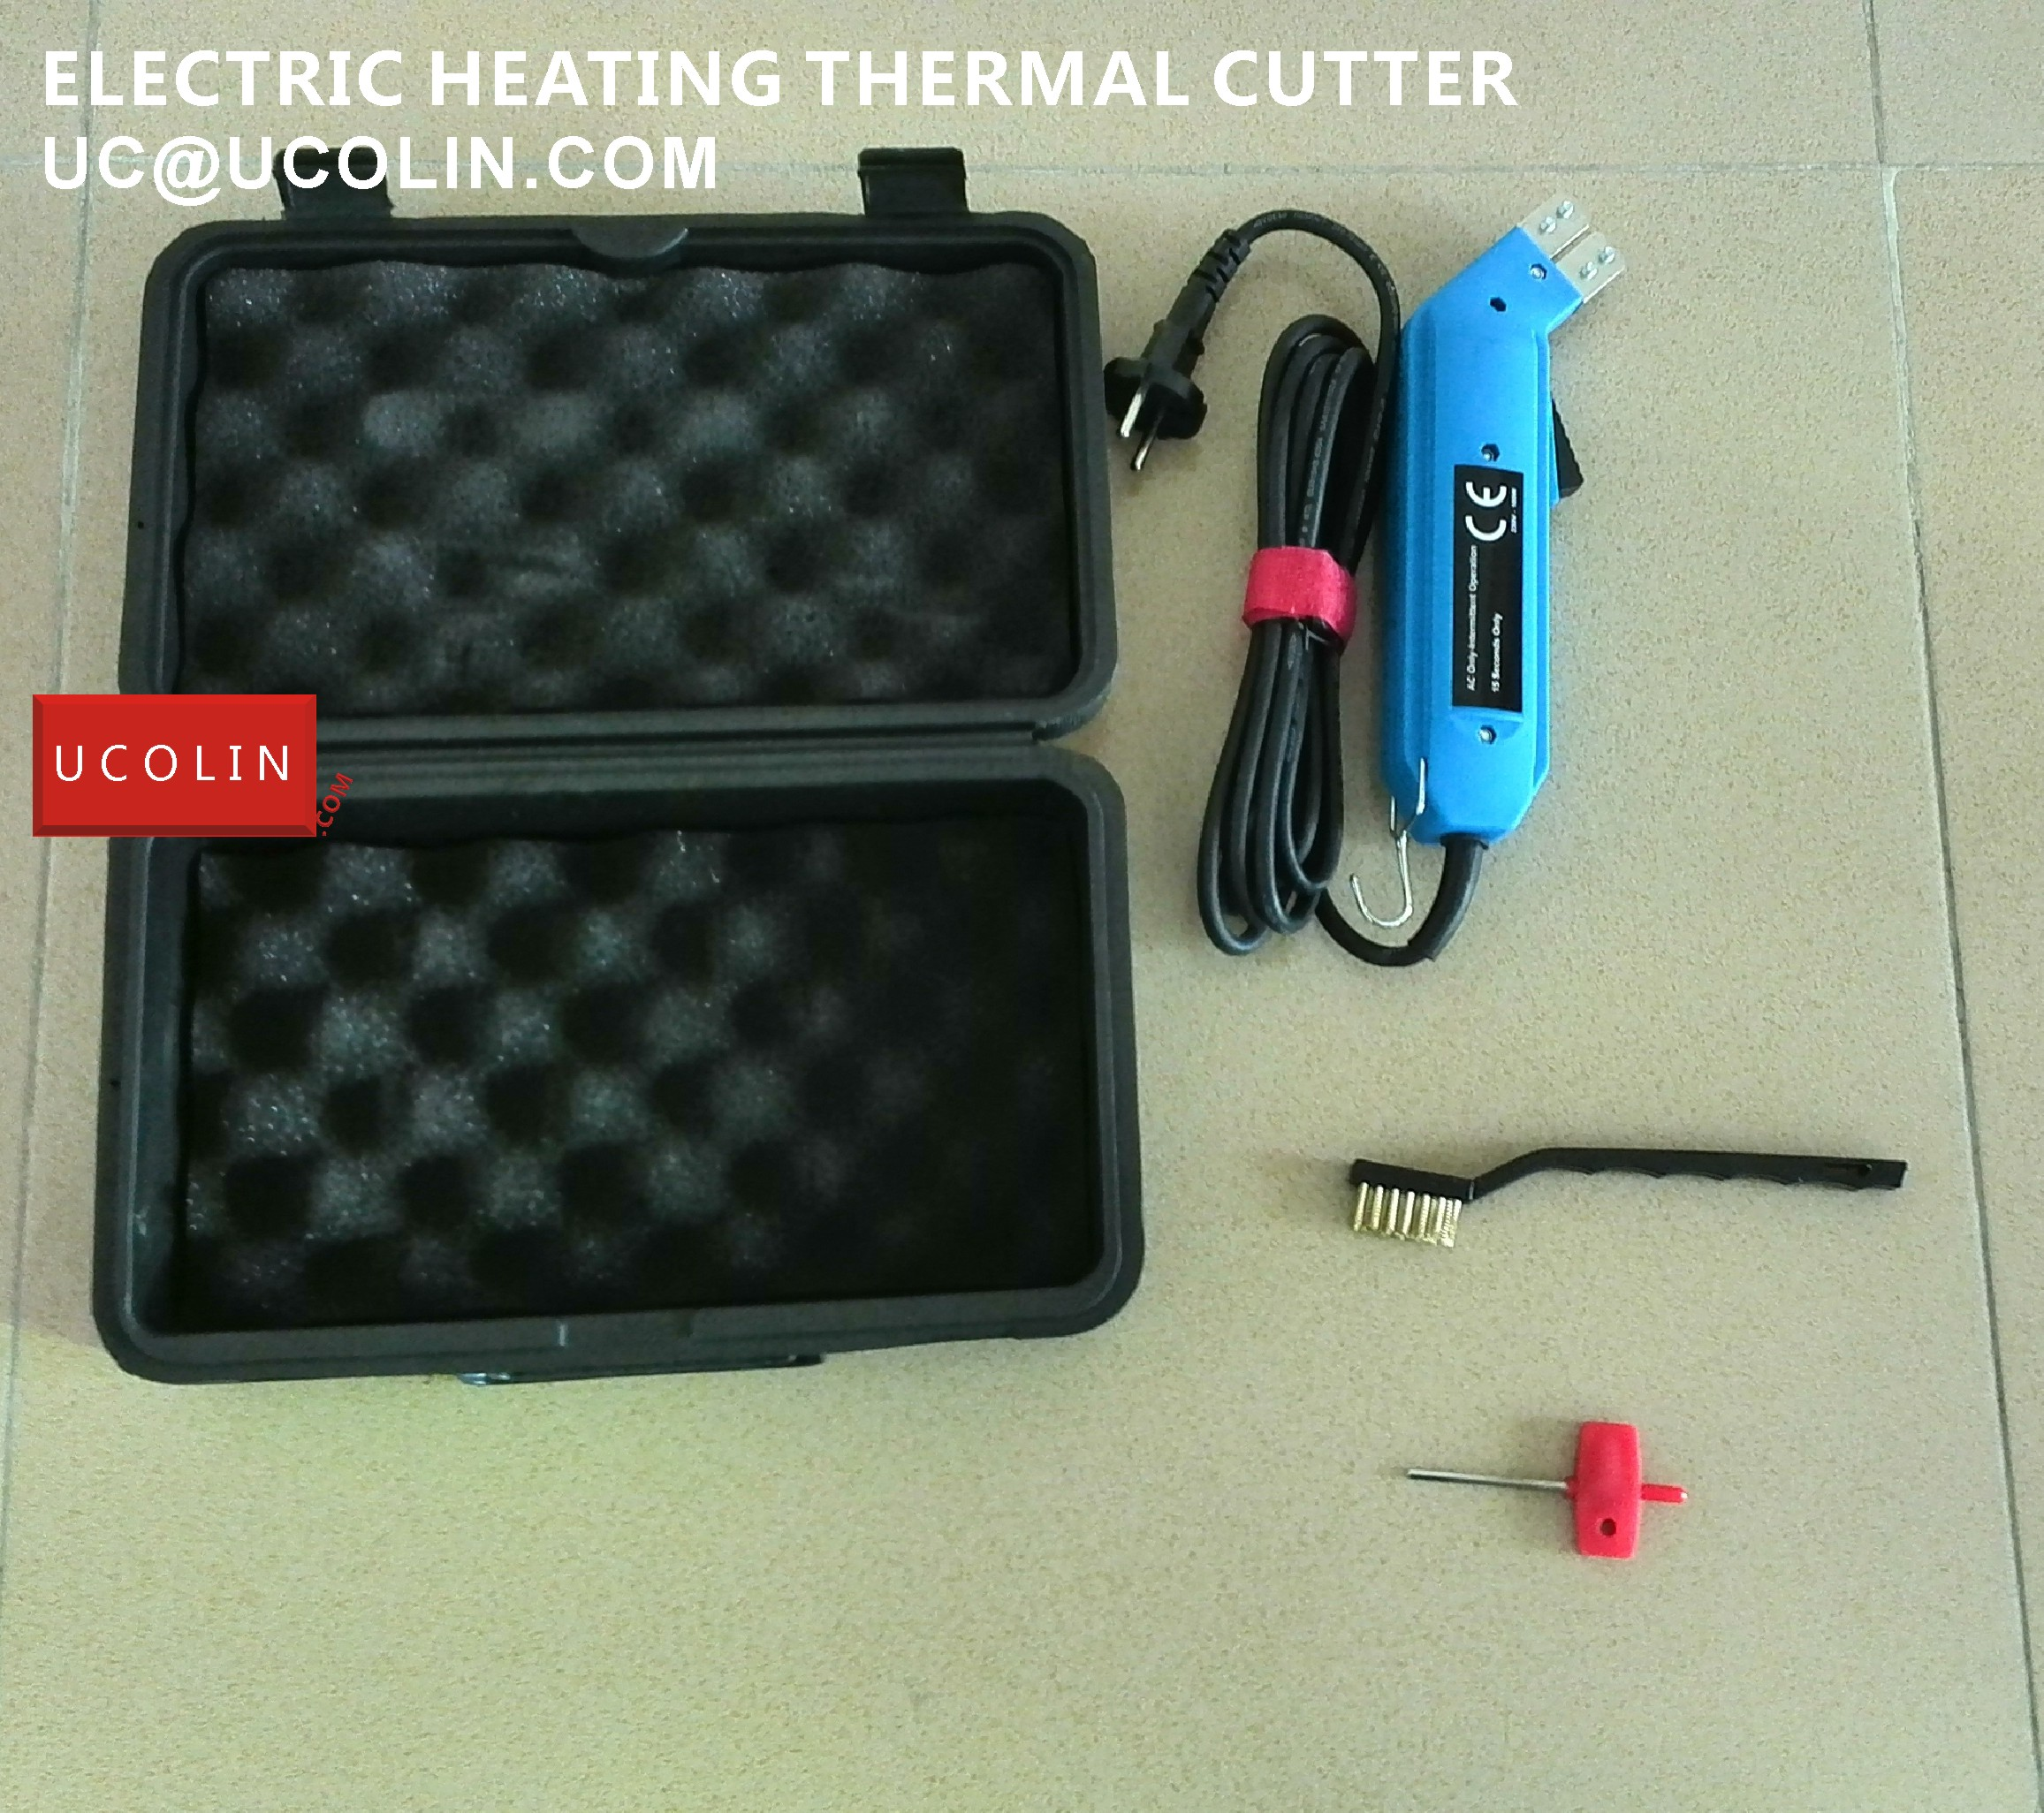 001 ELECTRIC HEATING CUTTER FOR SATINE RIBBON